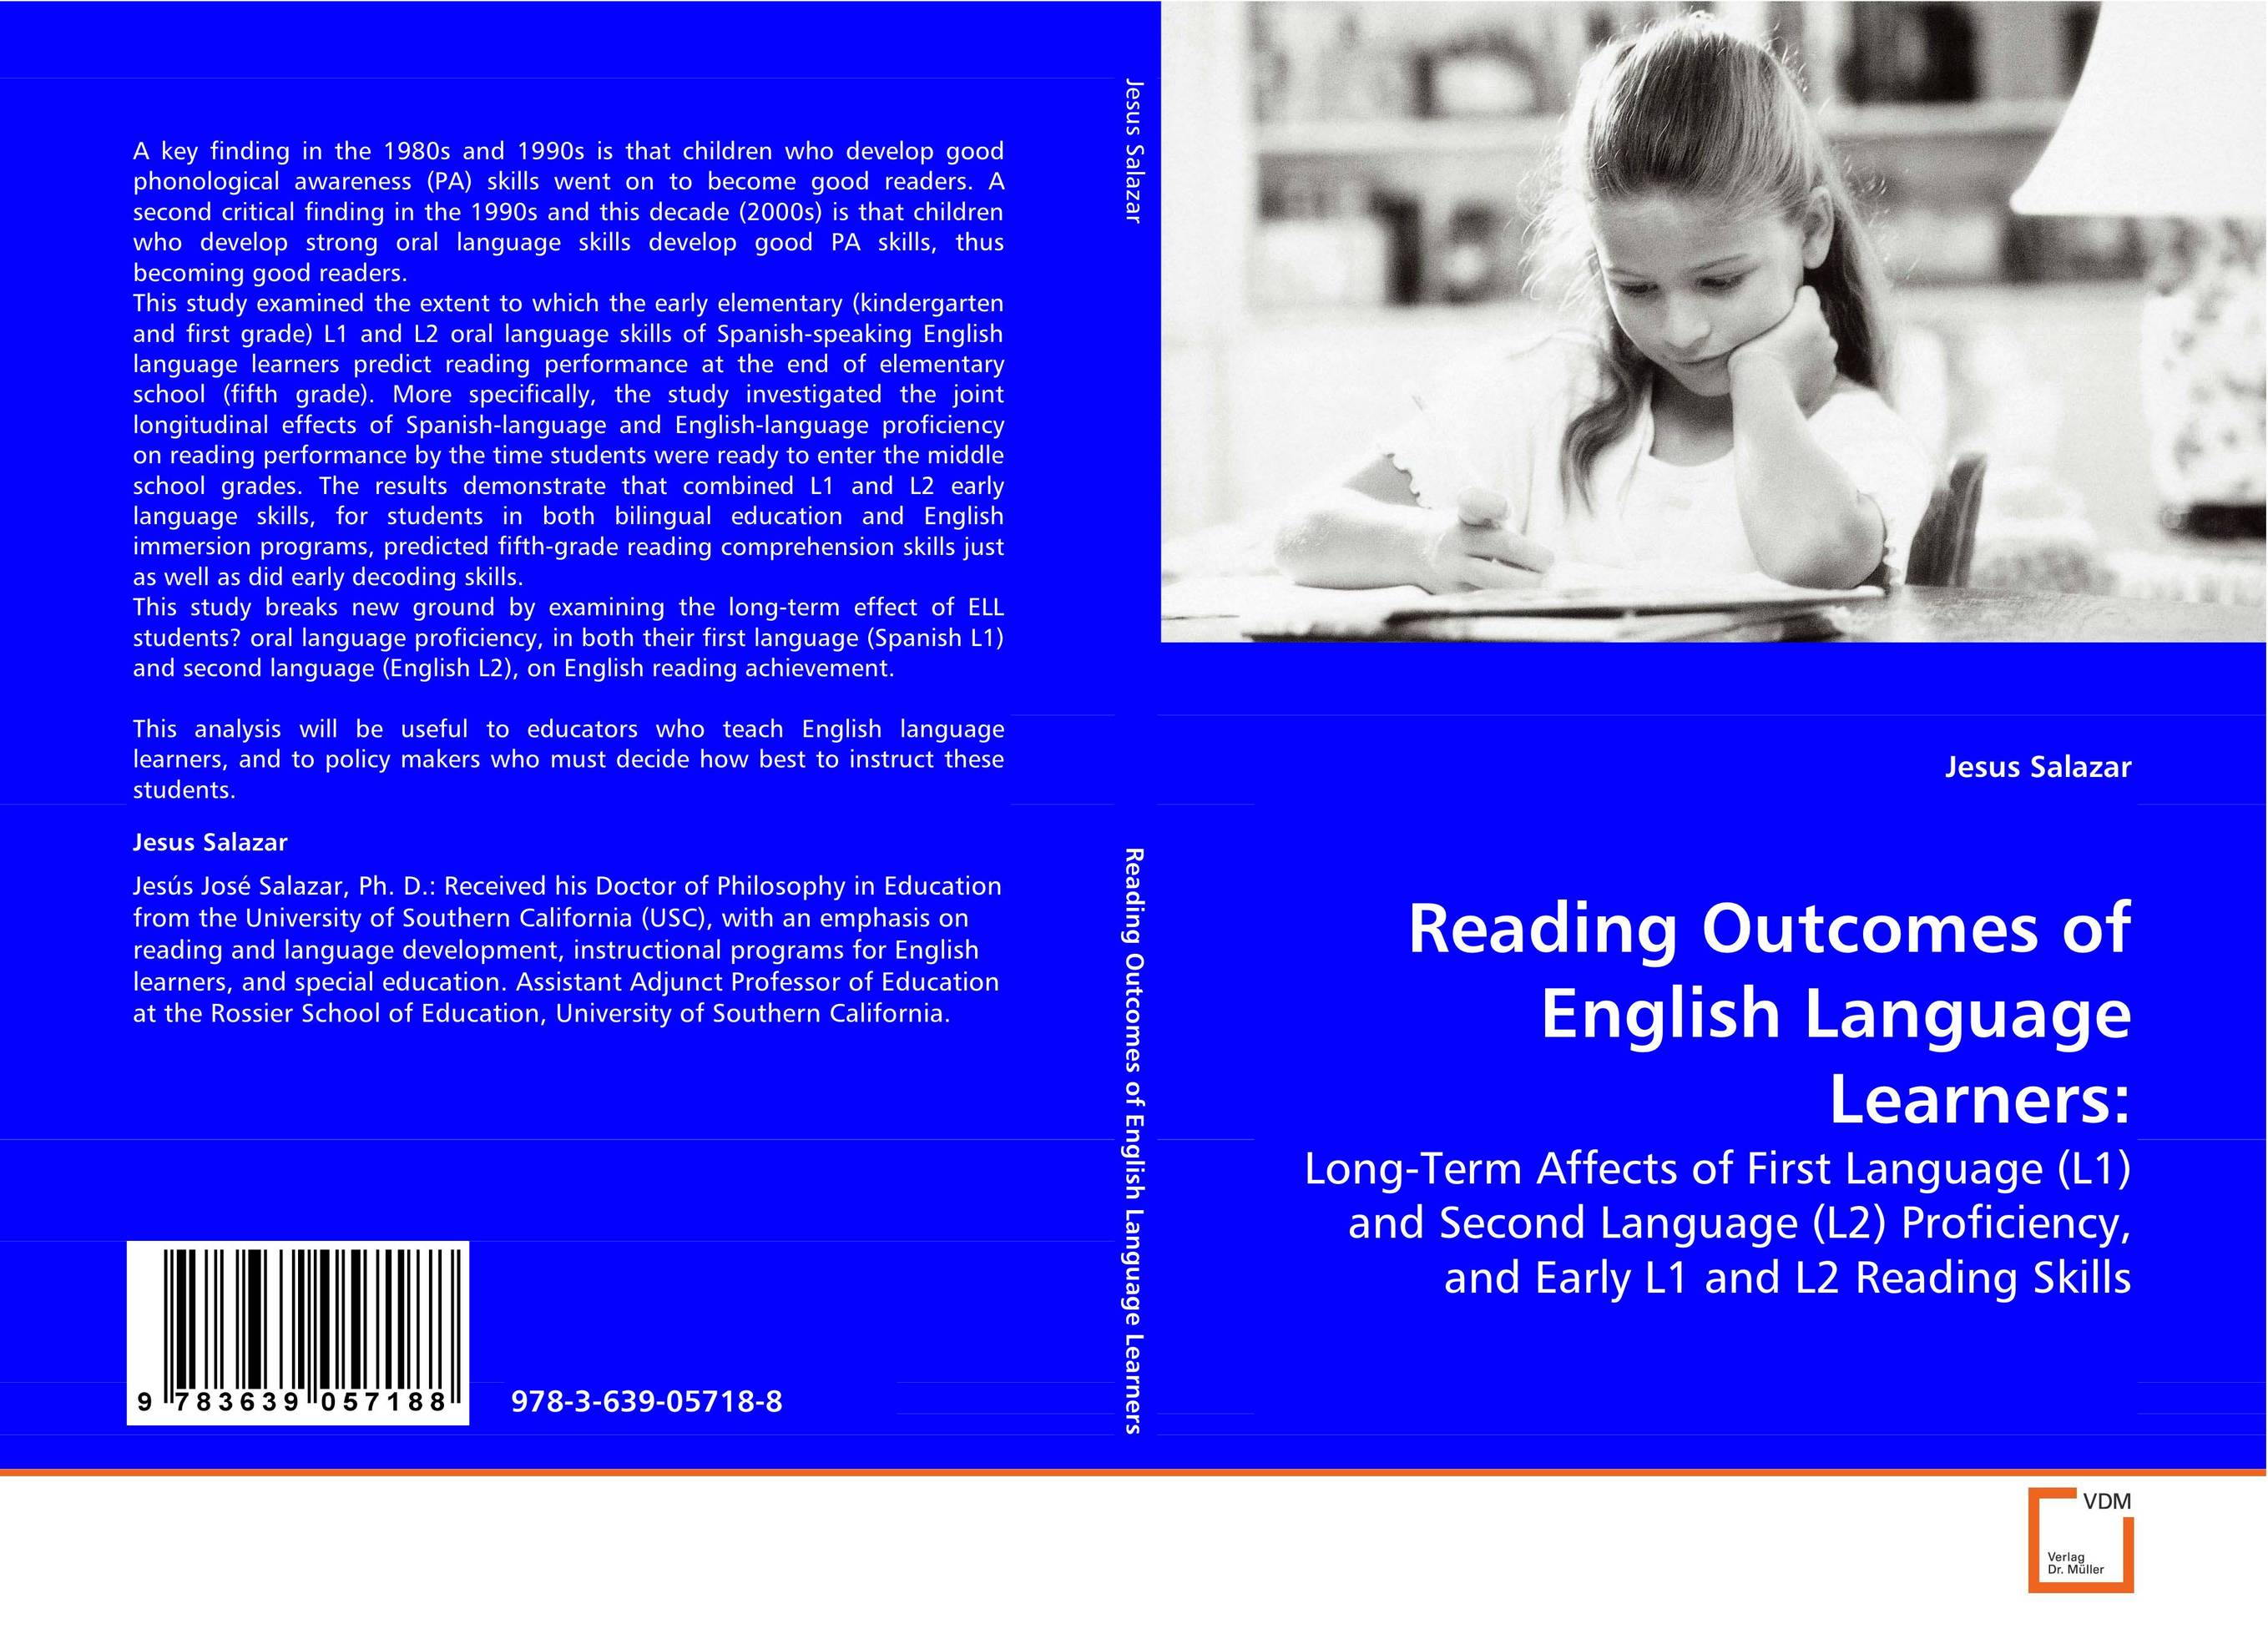 Reading Outcomes of English Language Learners: lisa kohne two way language immersion students how they fare in secondary school